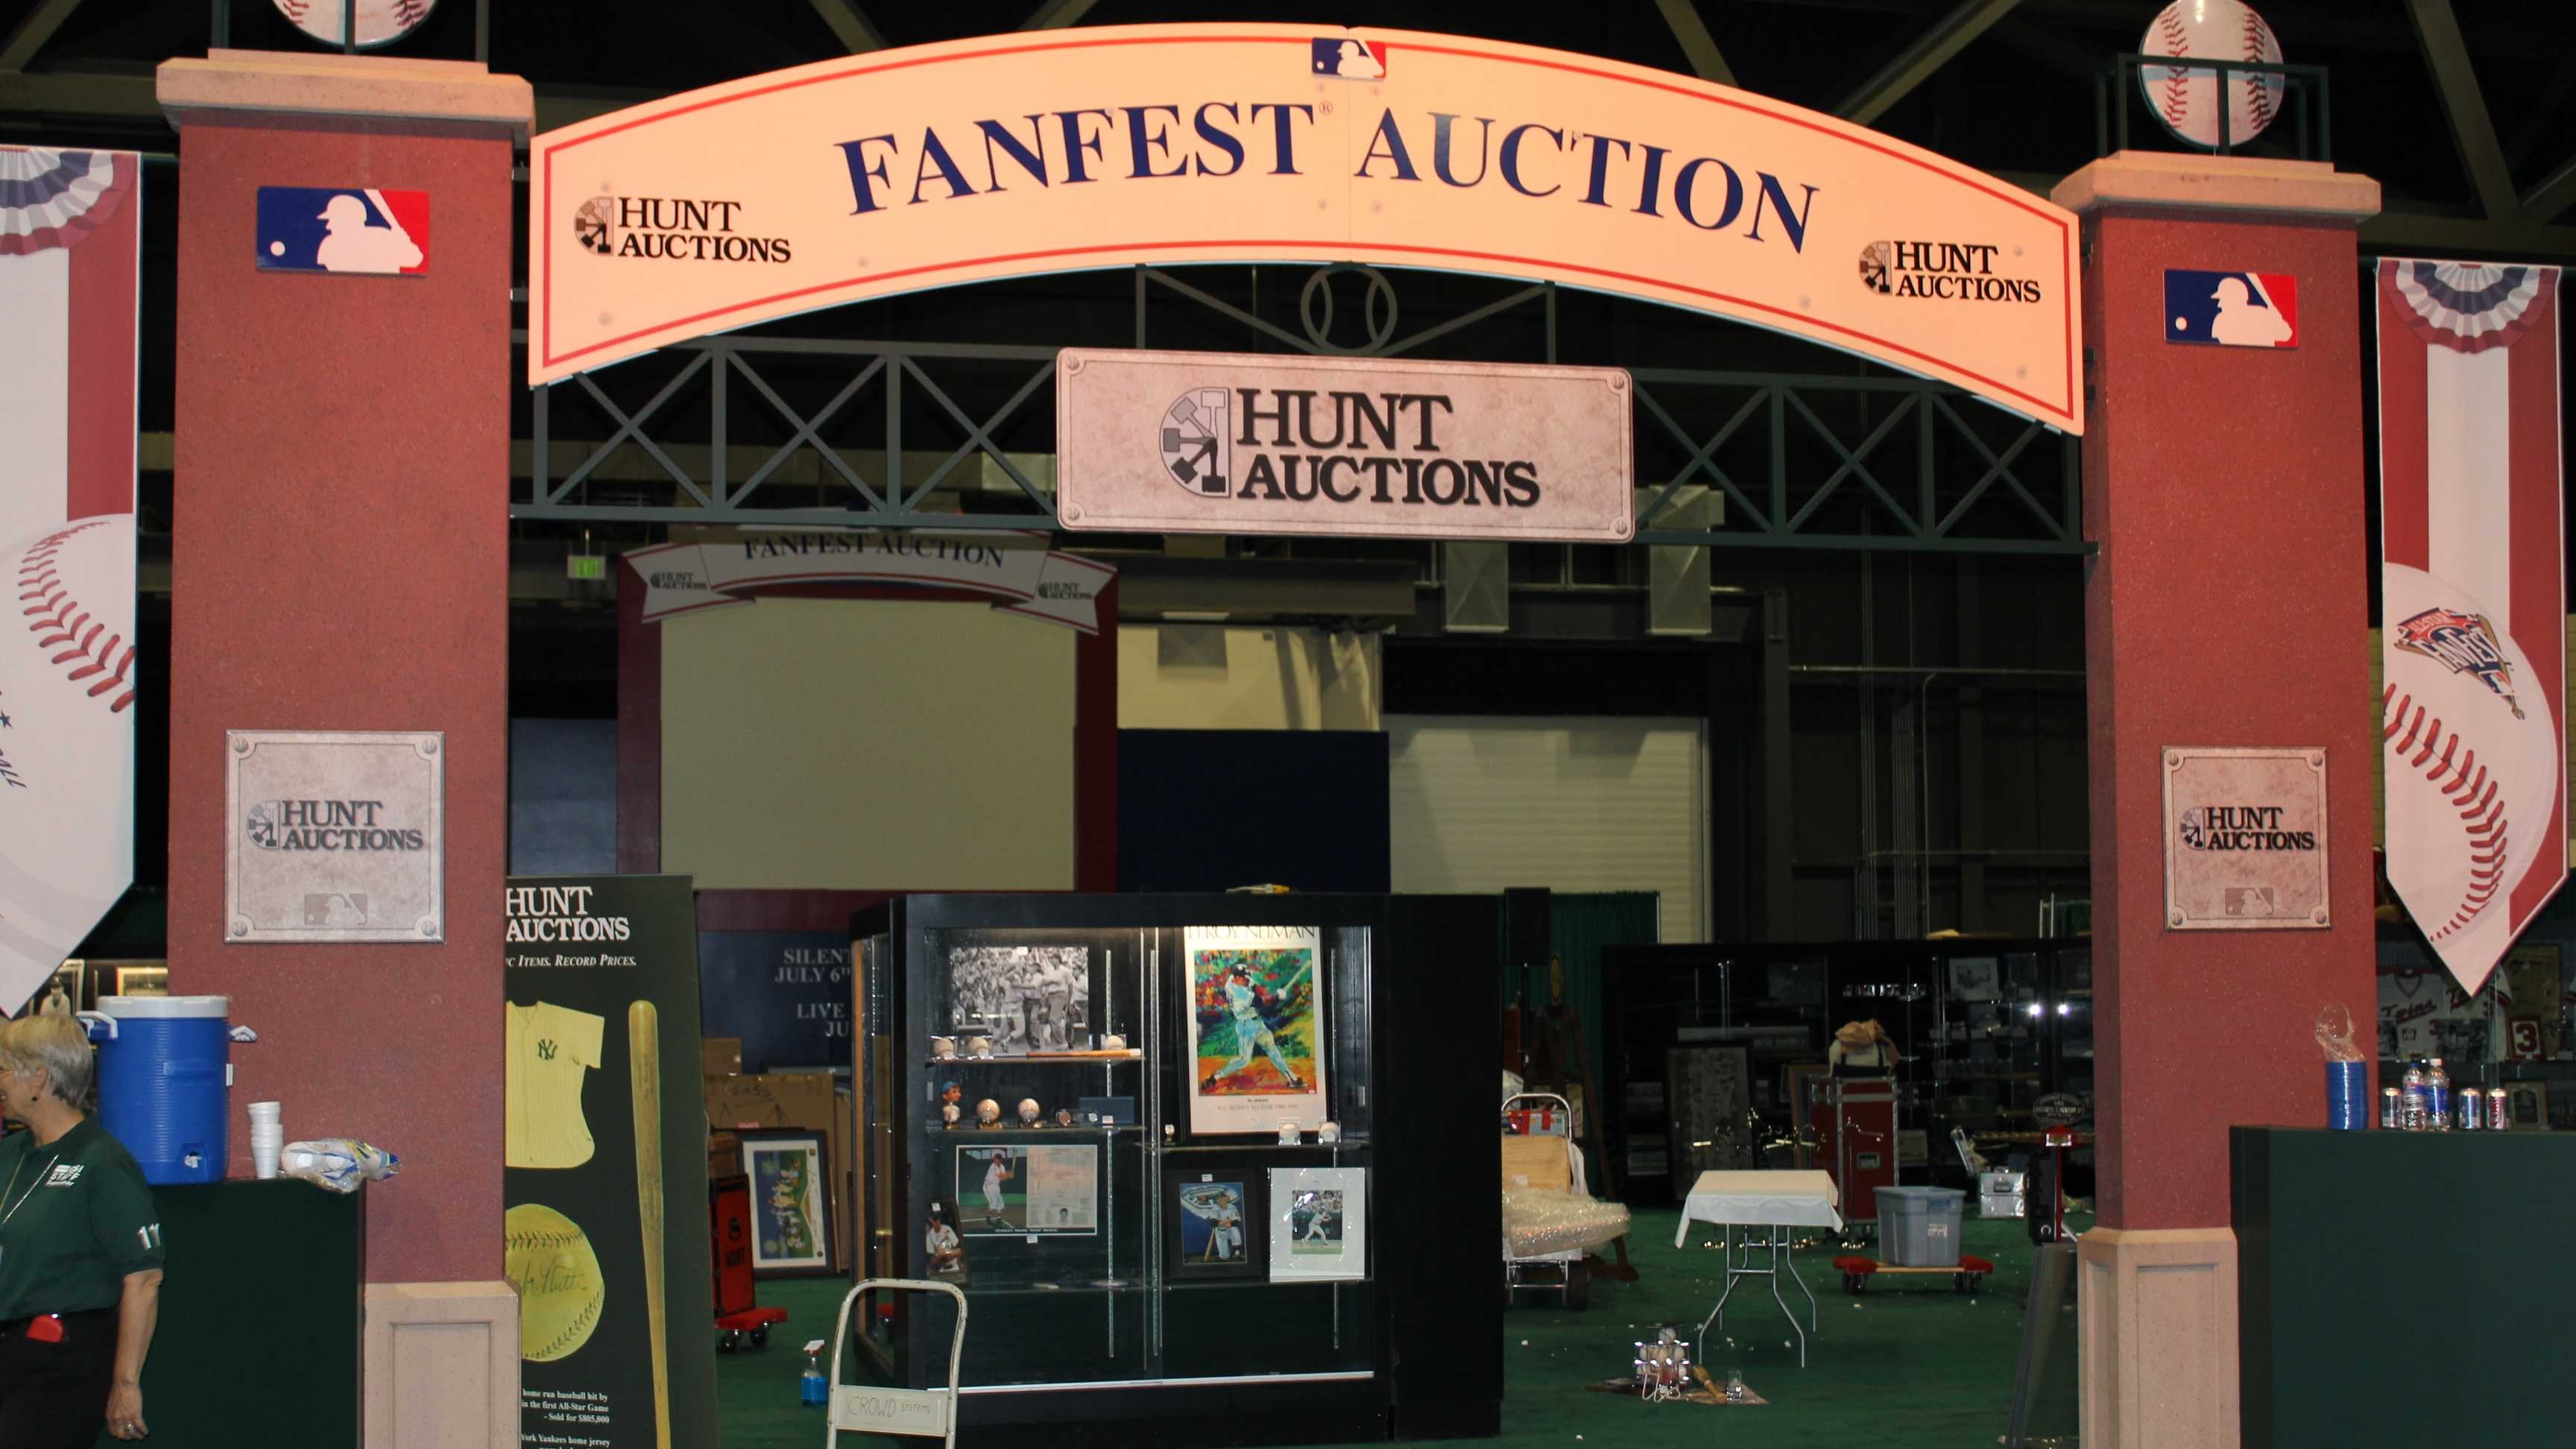 You can bid on limited-edition authentic baseball memorabilia in a silent auction throughout the event or at the live auction on July 10.